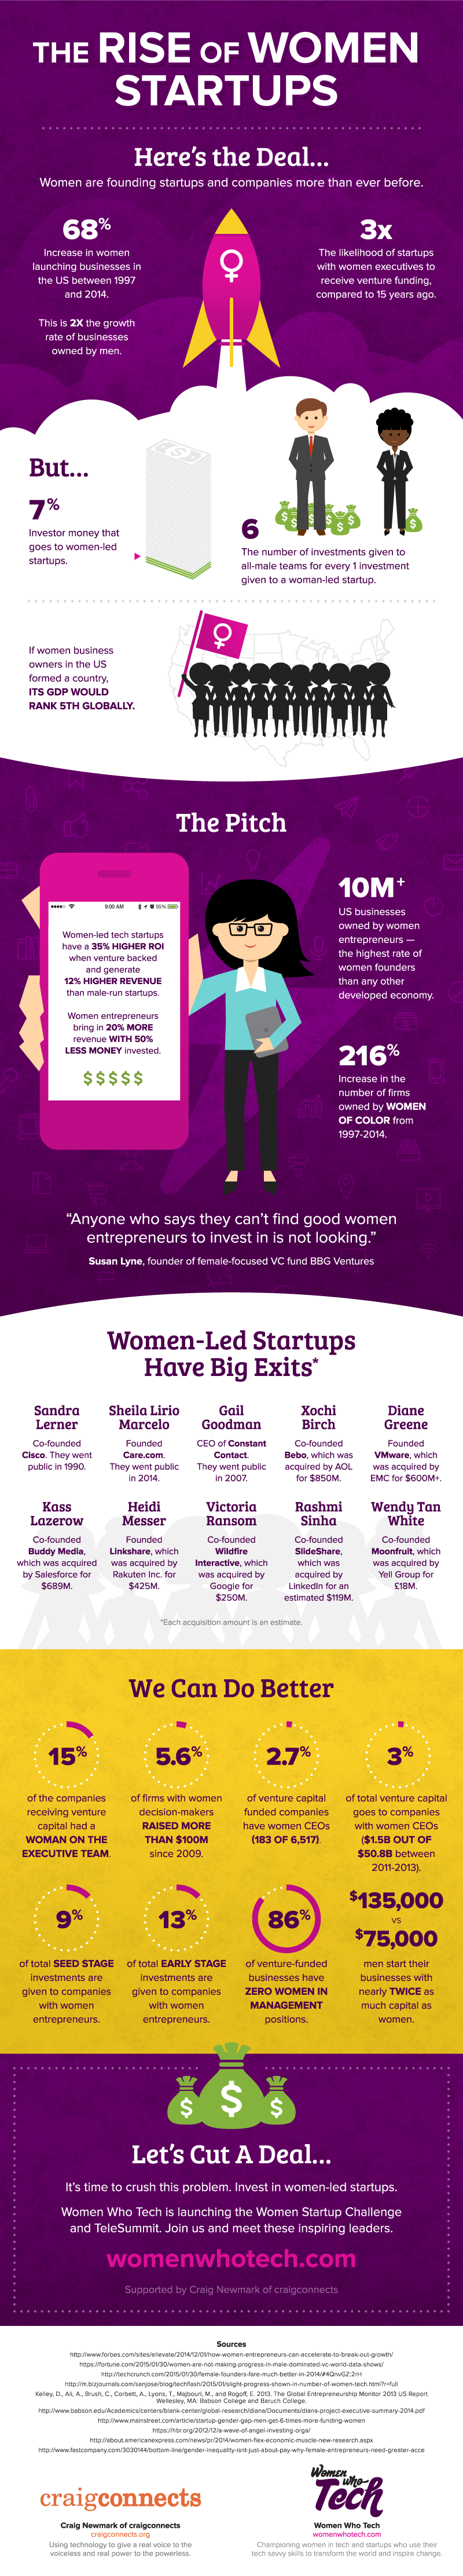 The Rise and Rise of Women-Led Startups - Infographic